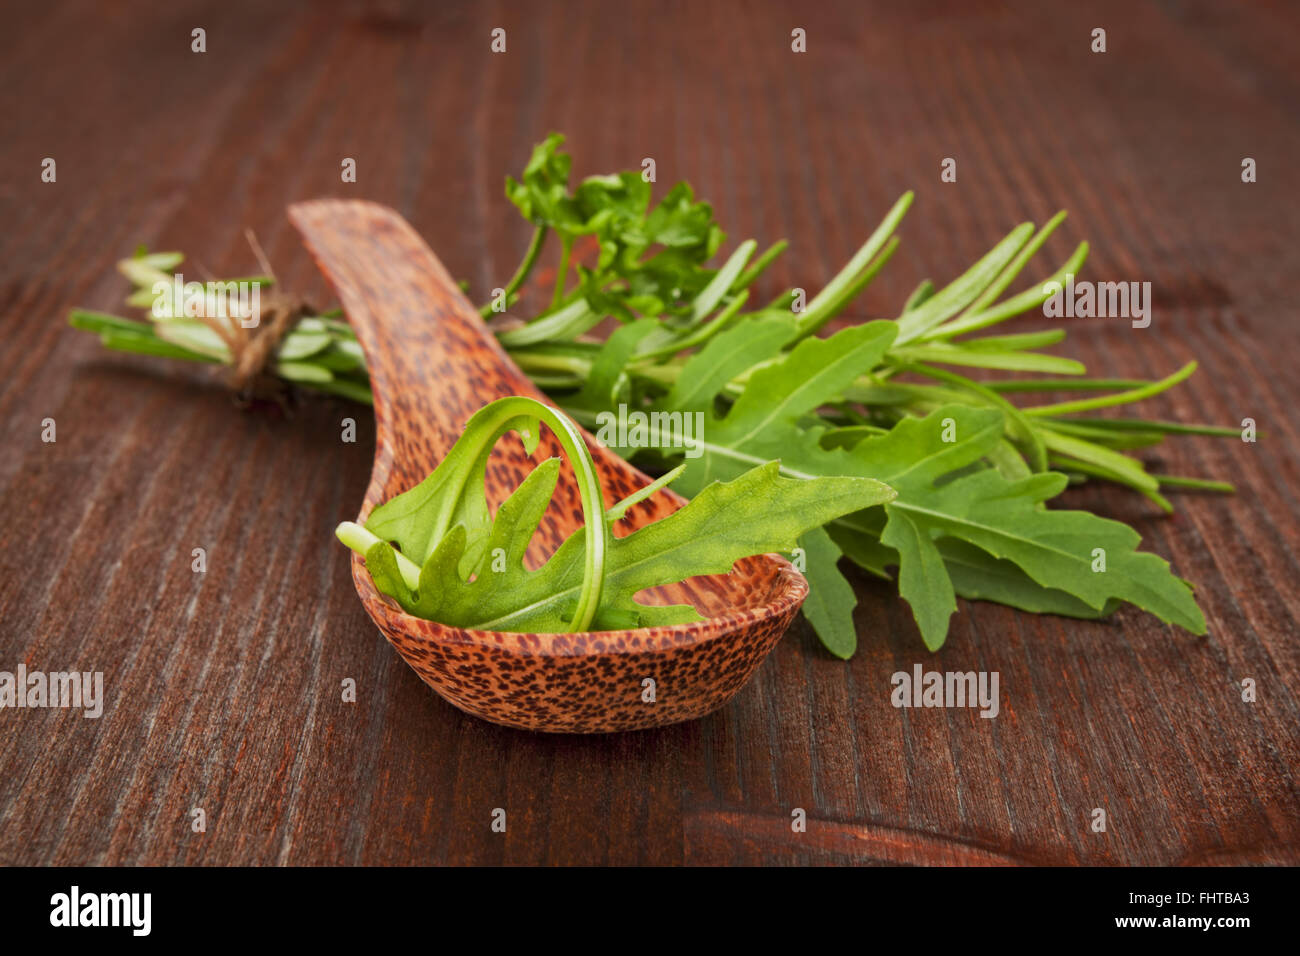 Culinary herbs variation. - Stock Image